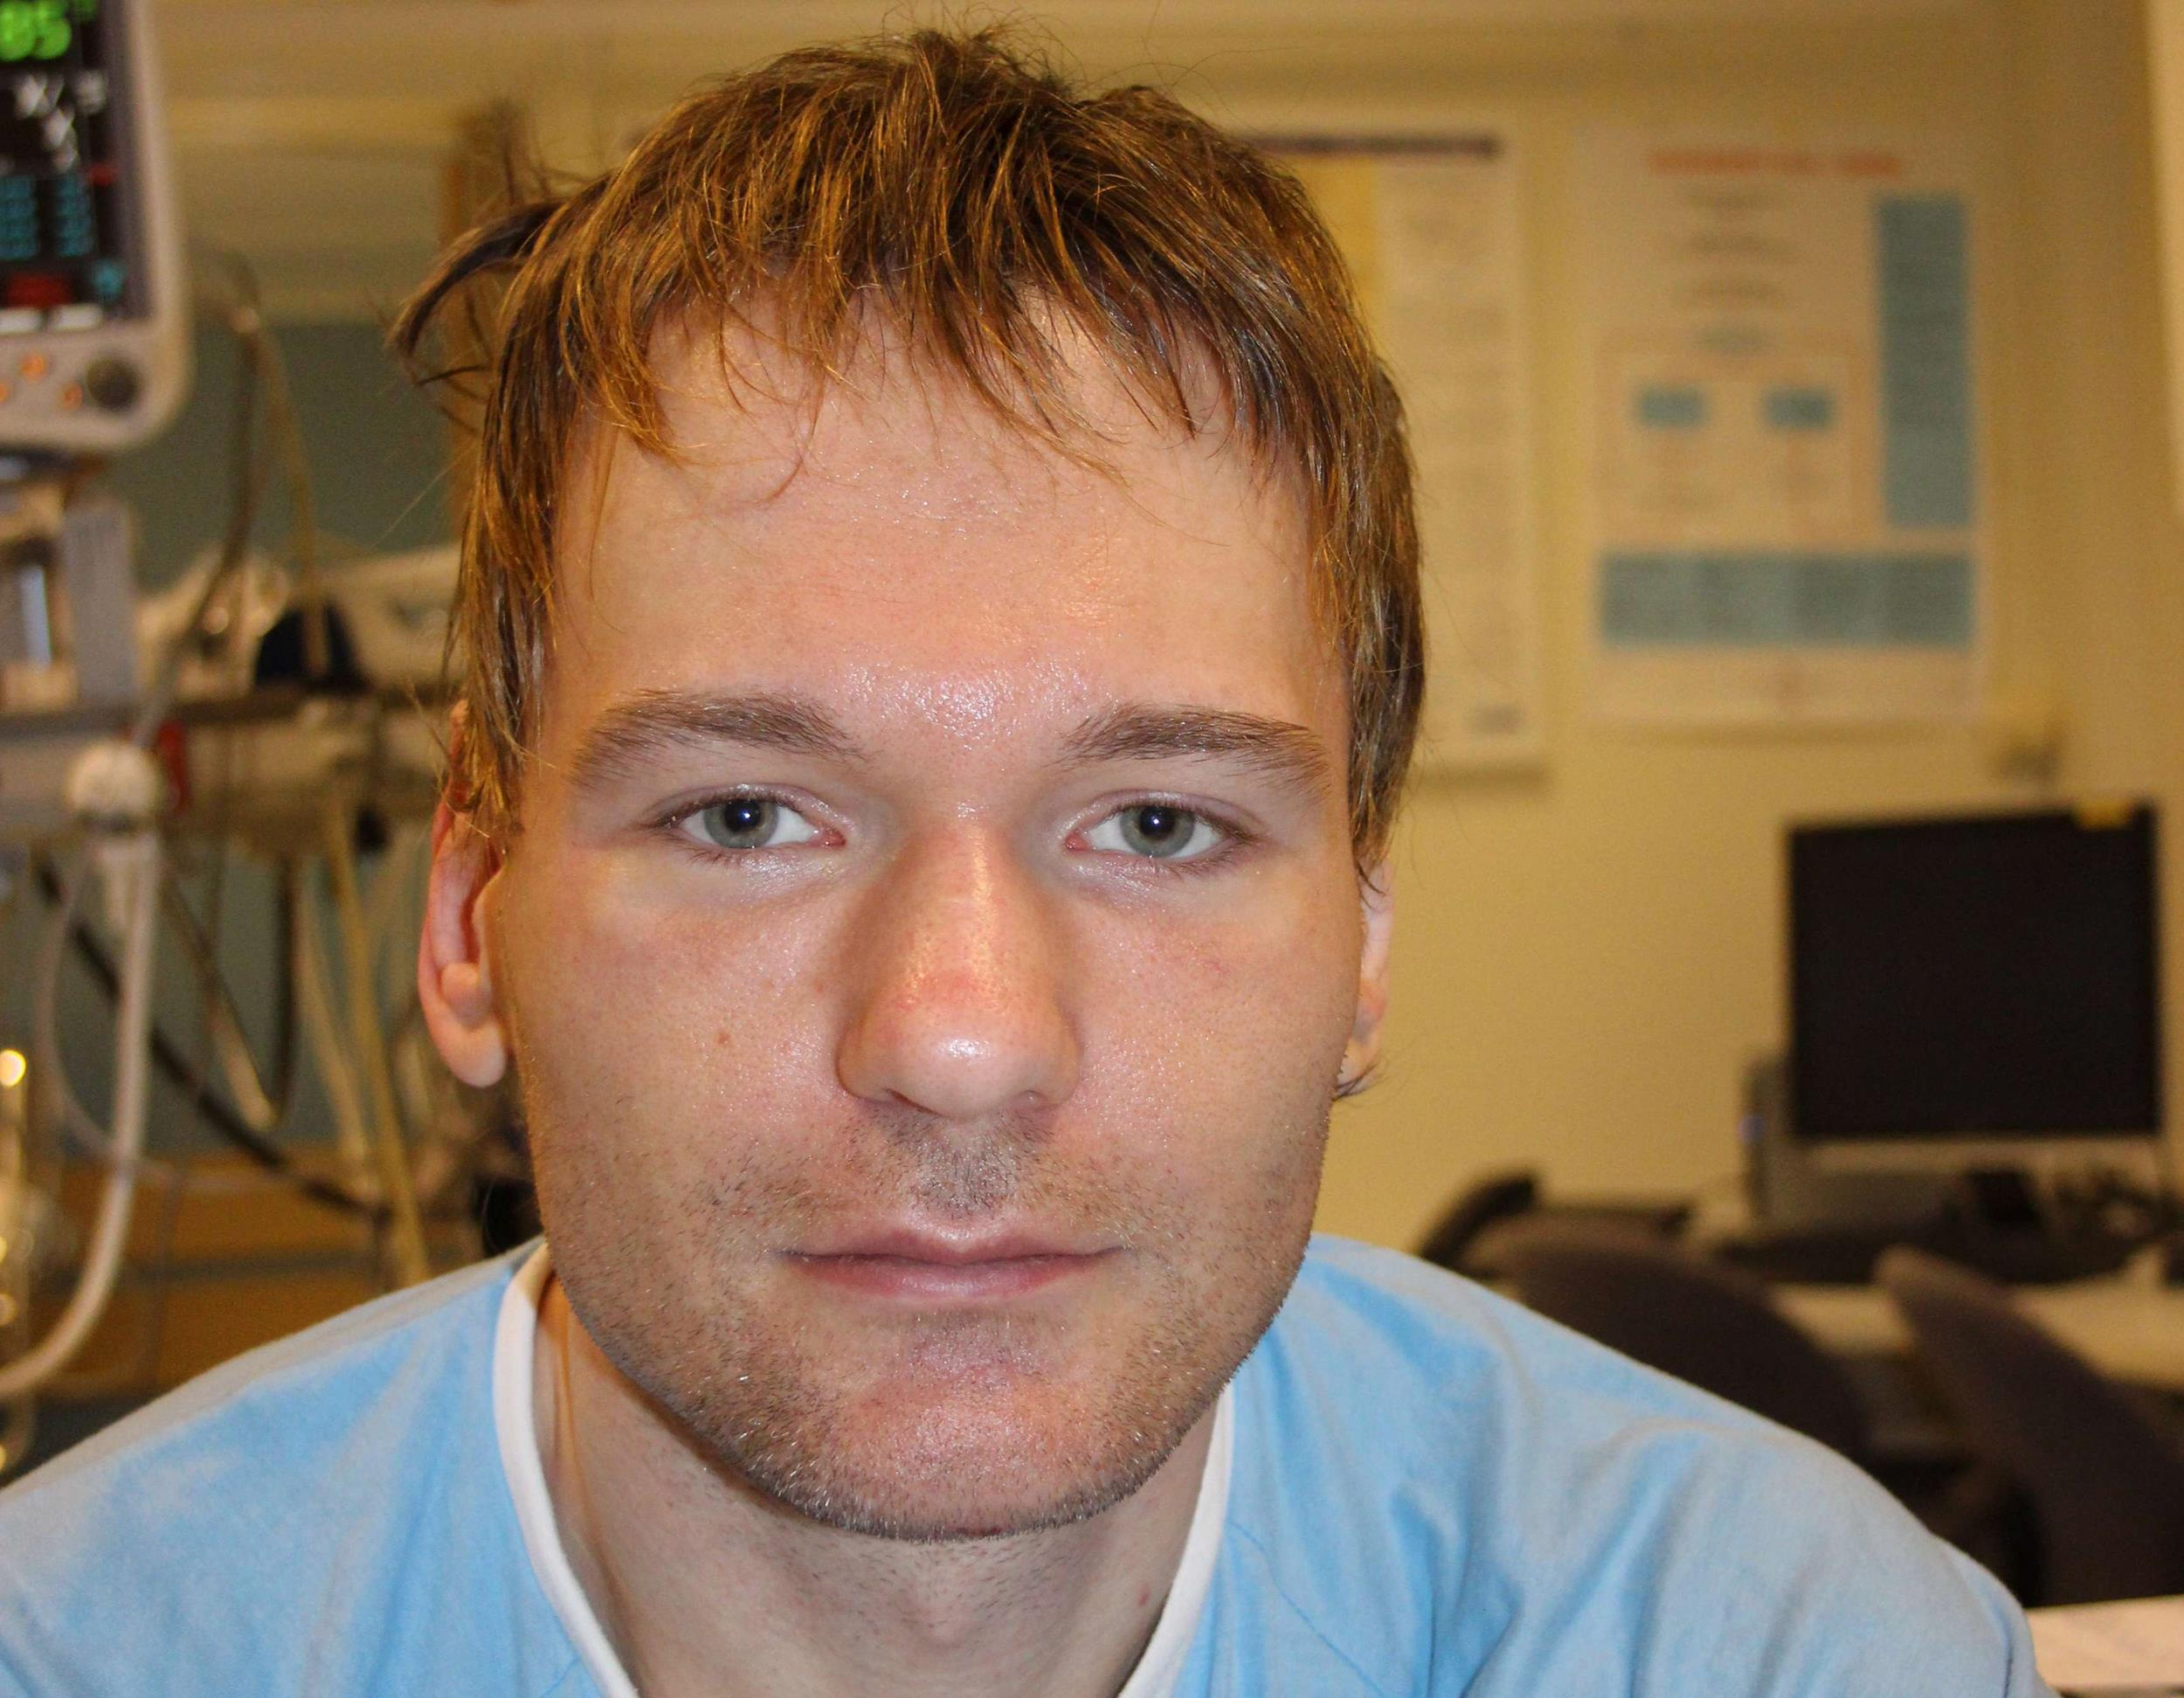 Image: A man found in Norway suffering from amnesia